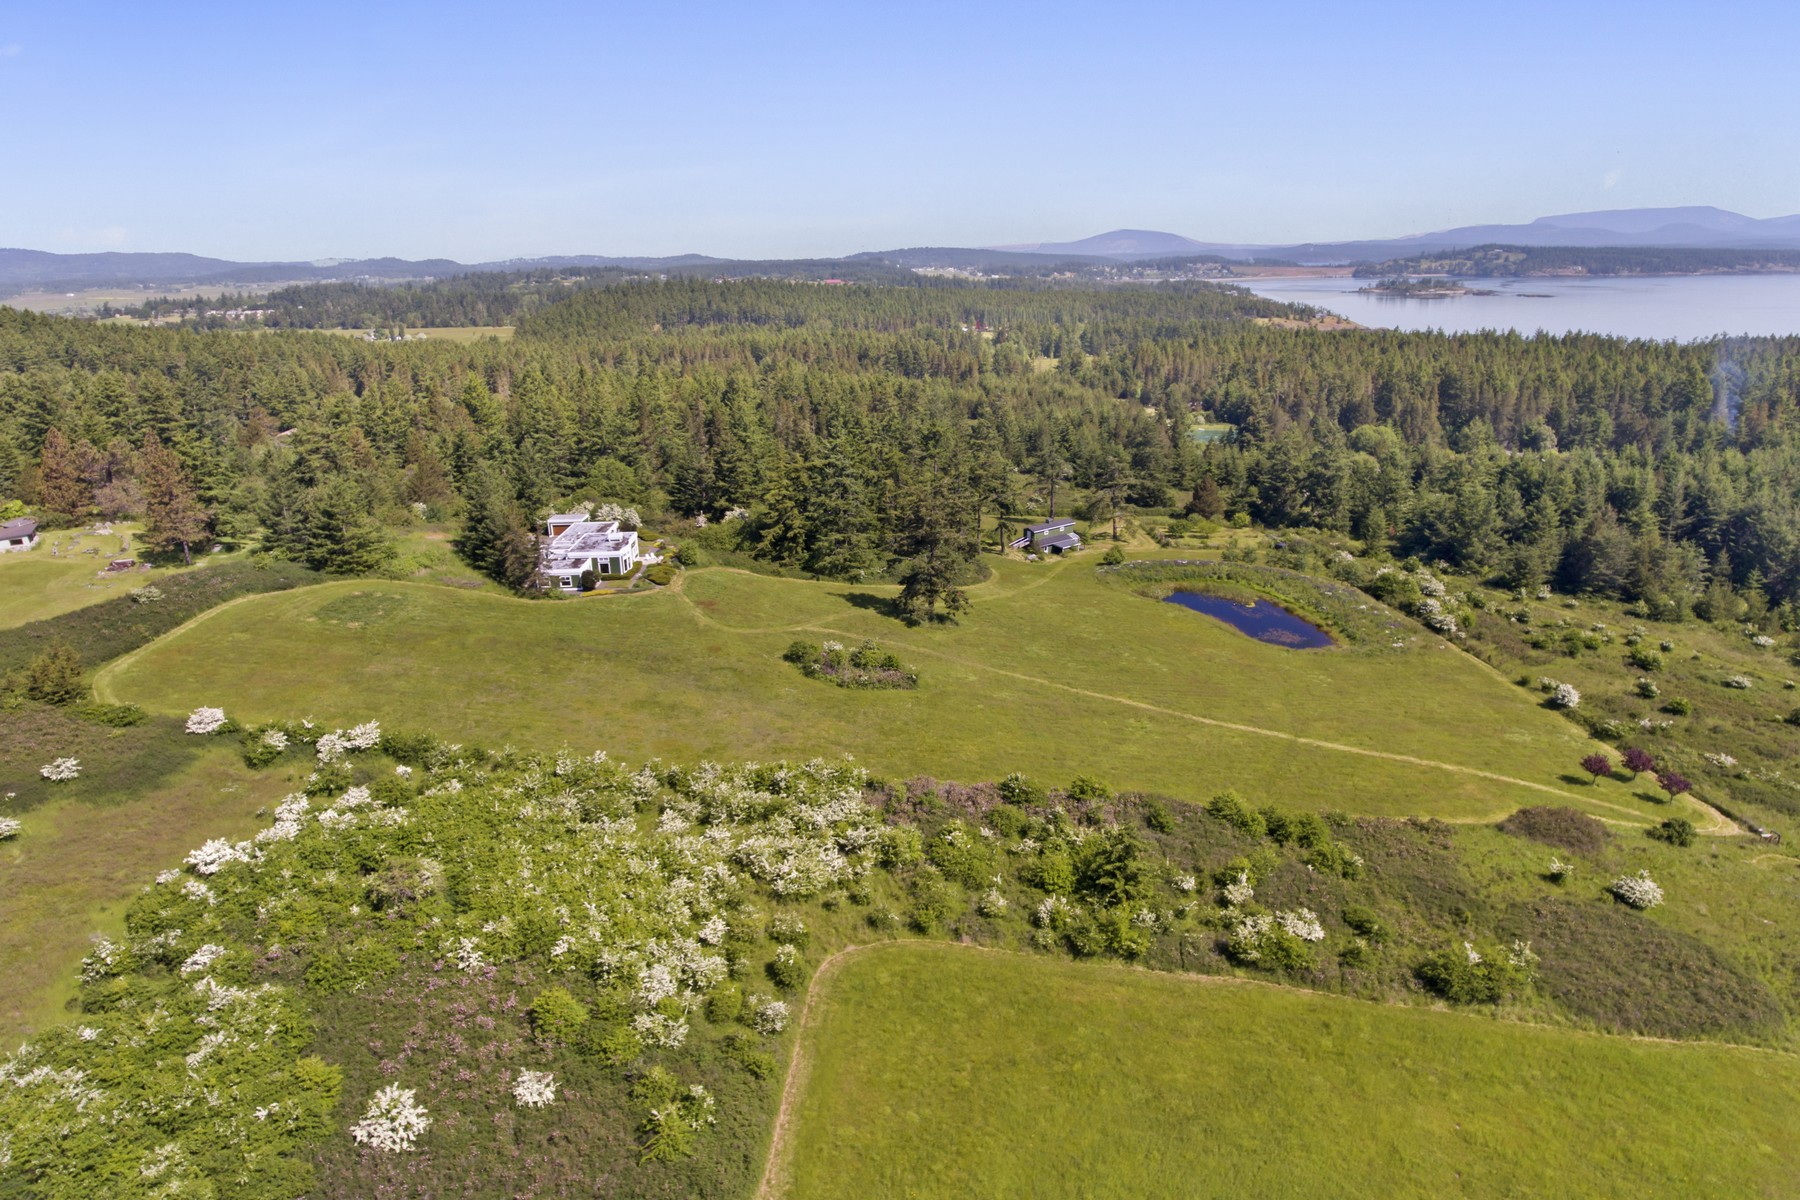 Maison unifamiliale pour l Vente à Spacious Home with Panoramic Views and Acreage 144 Jensen Bay Road Friday Harbor, Washington 98250 États-Unis